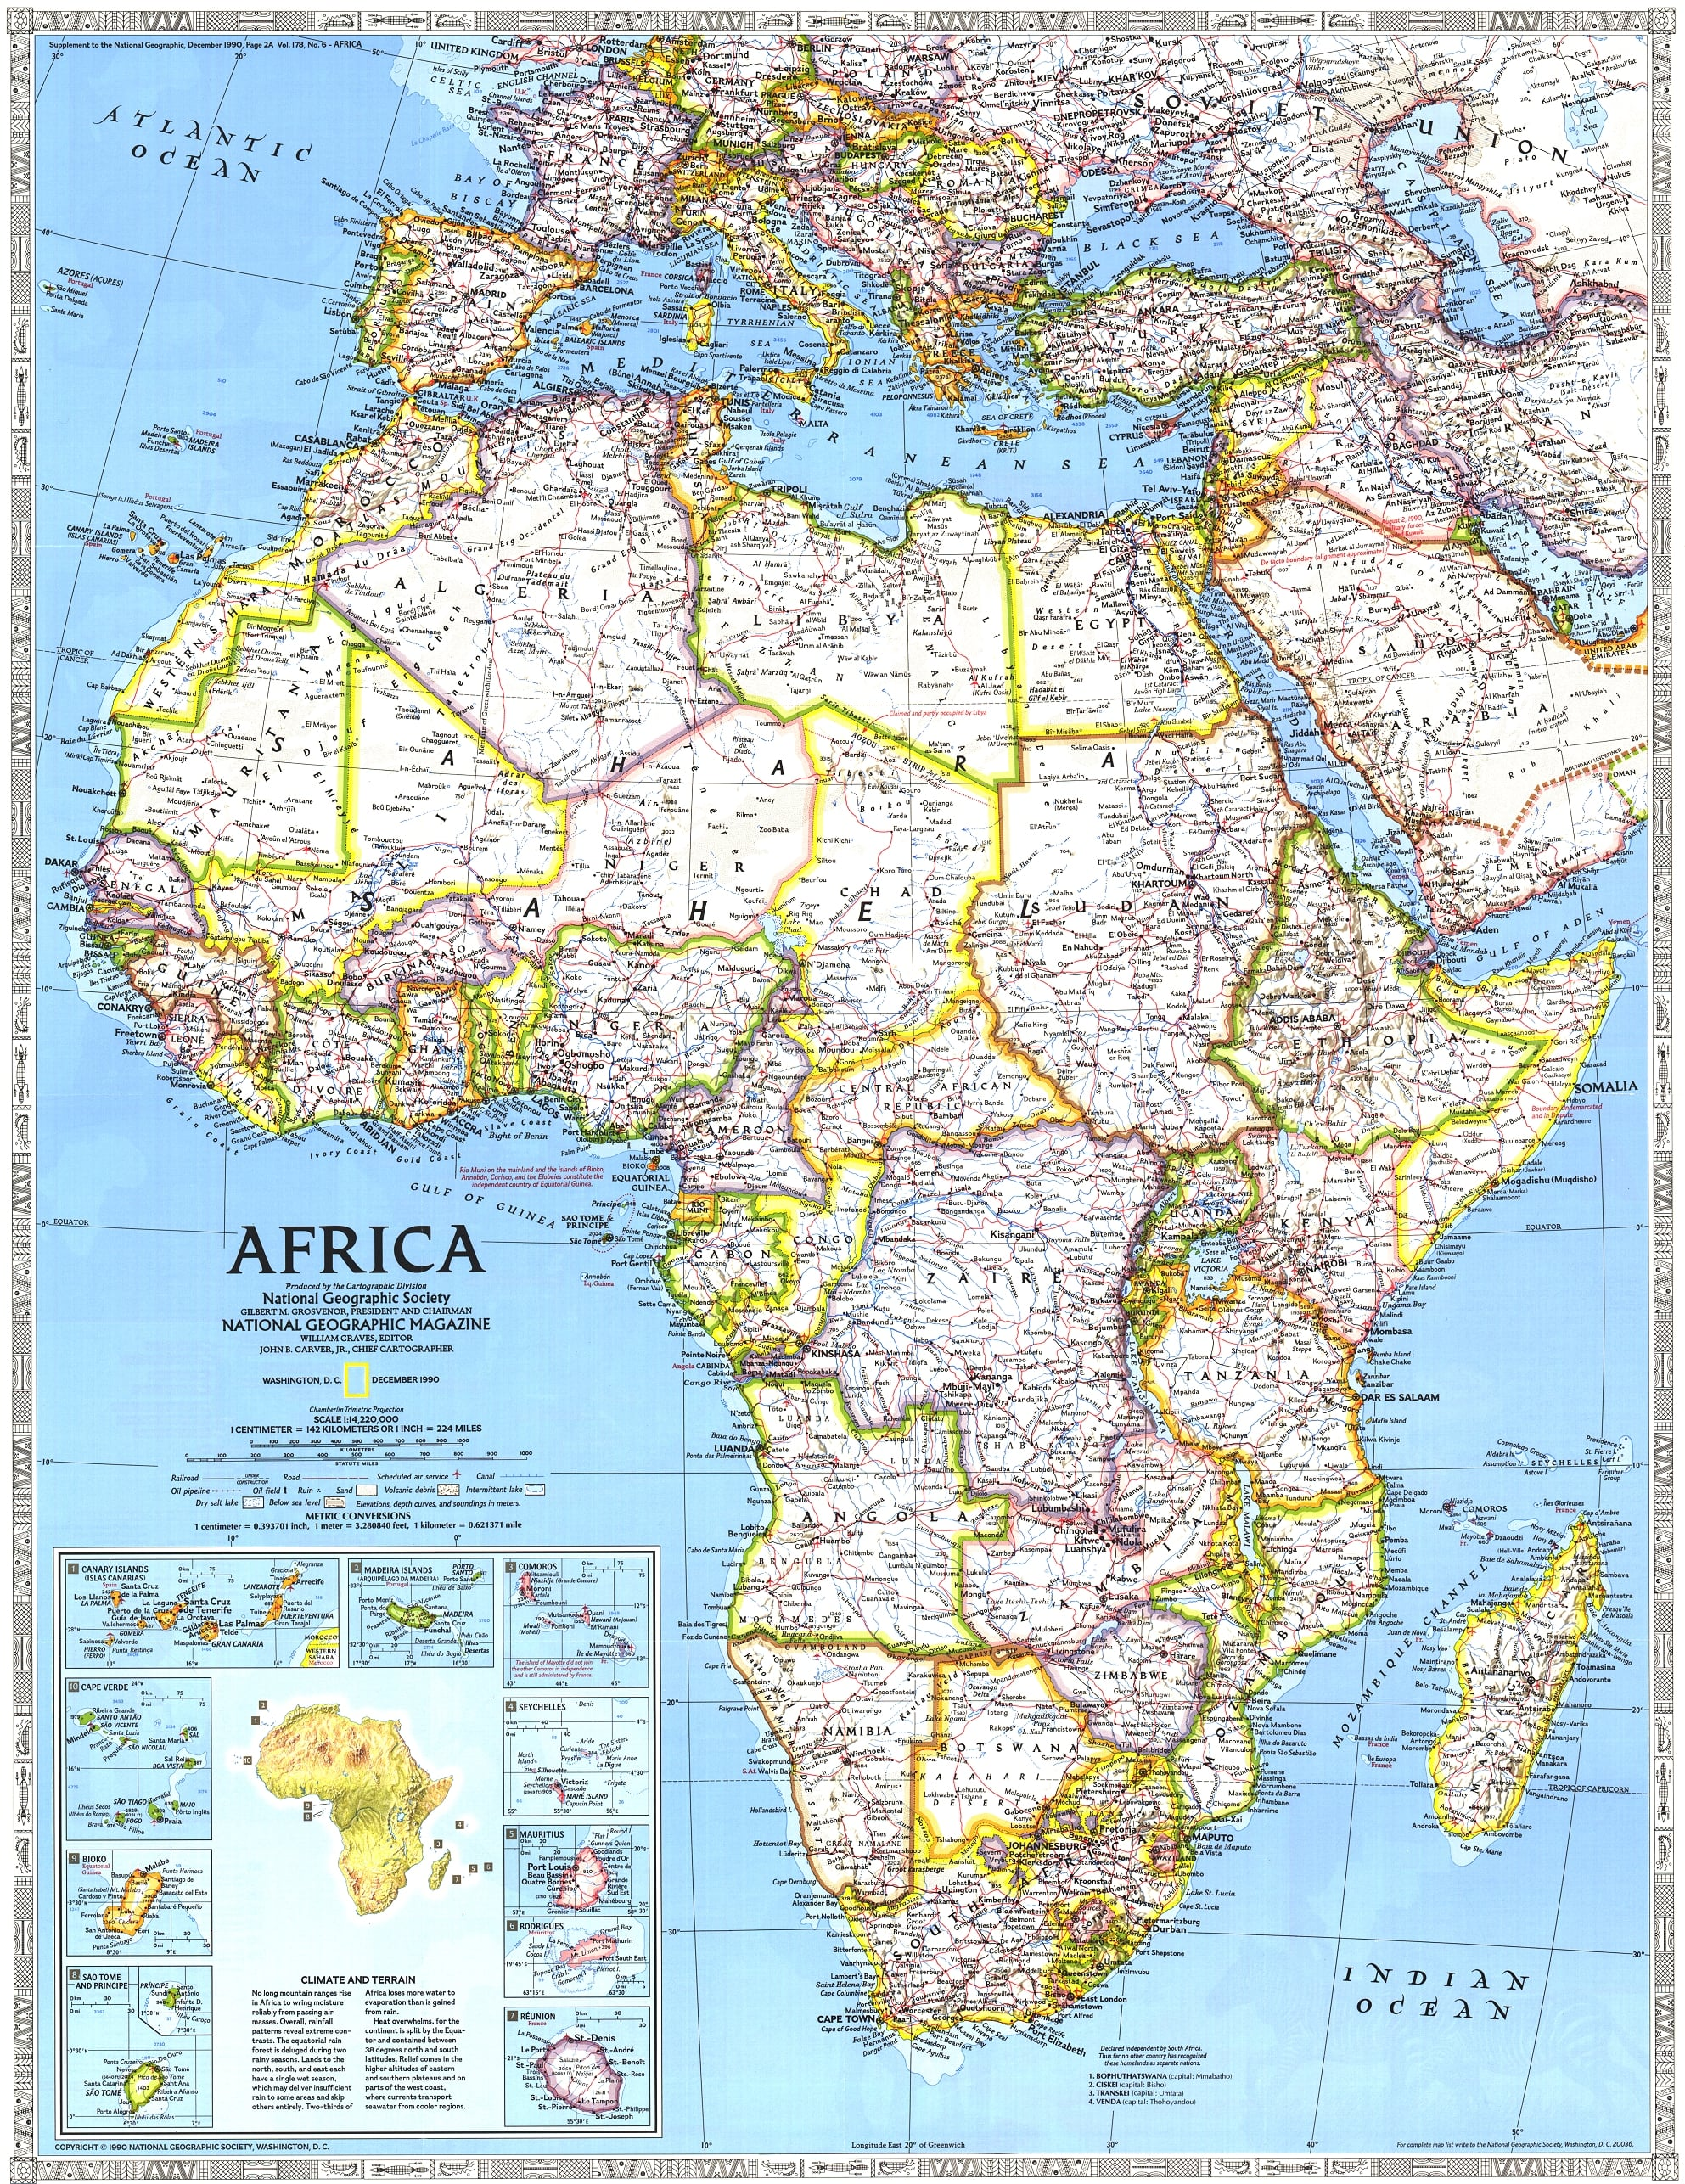 NGS 1990 Africa Map